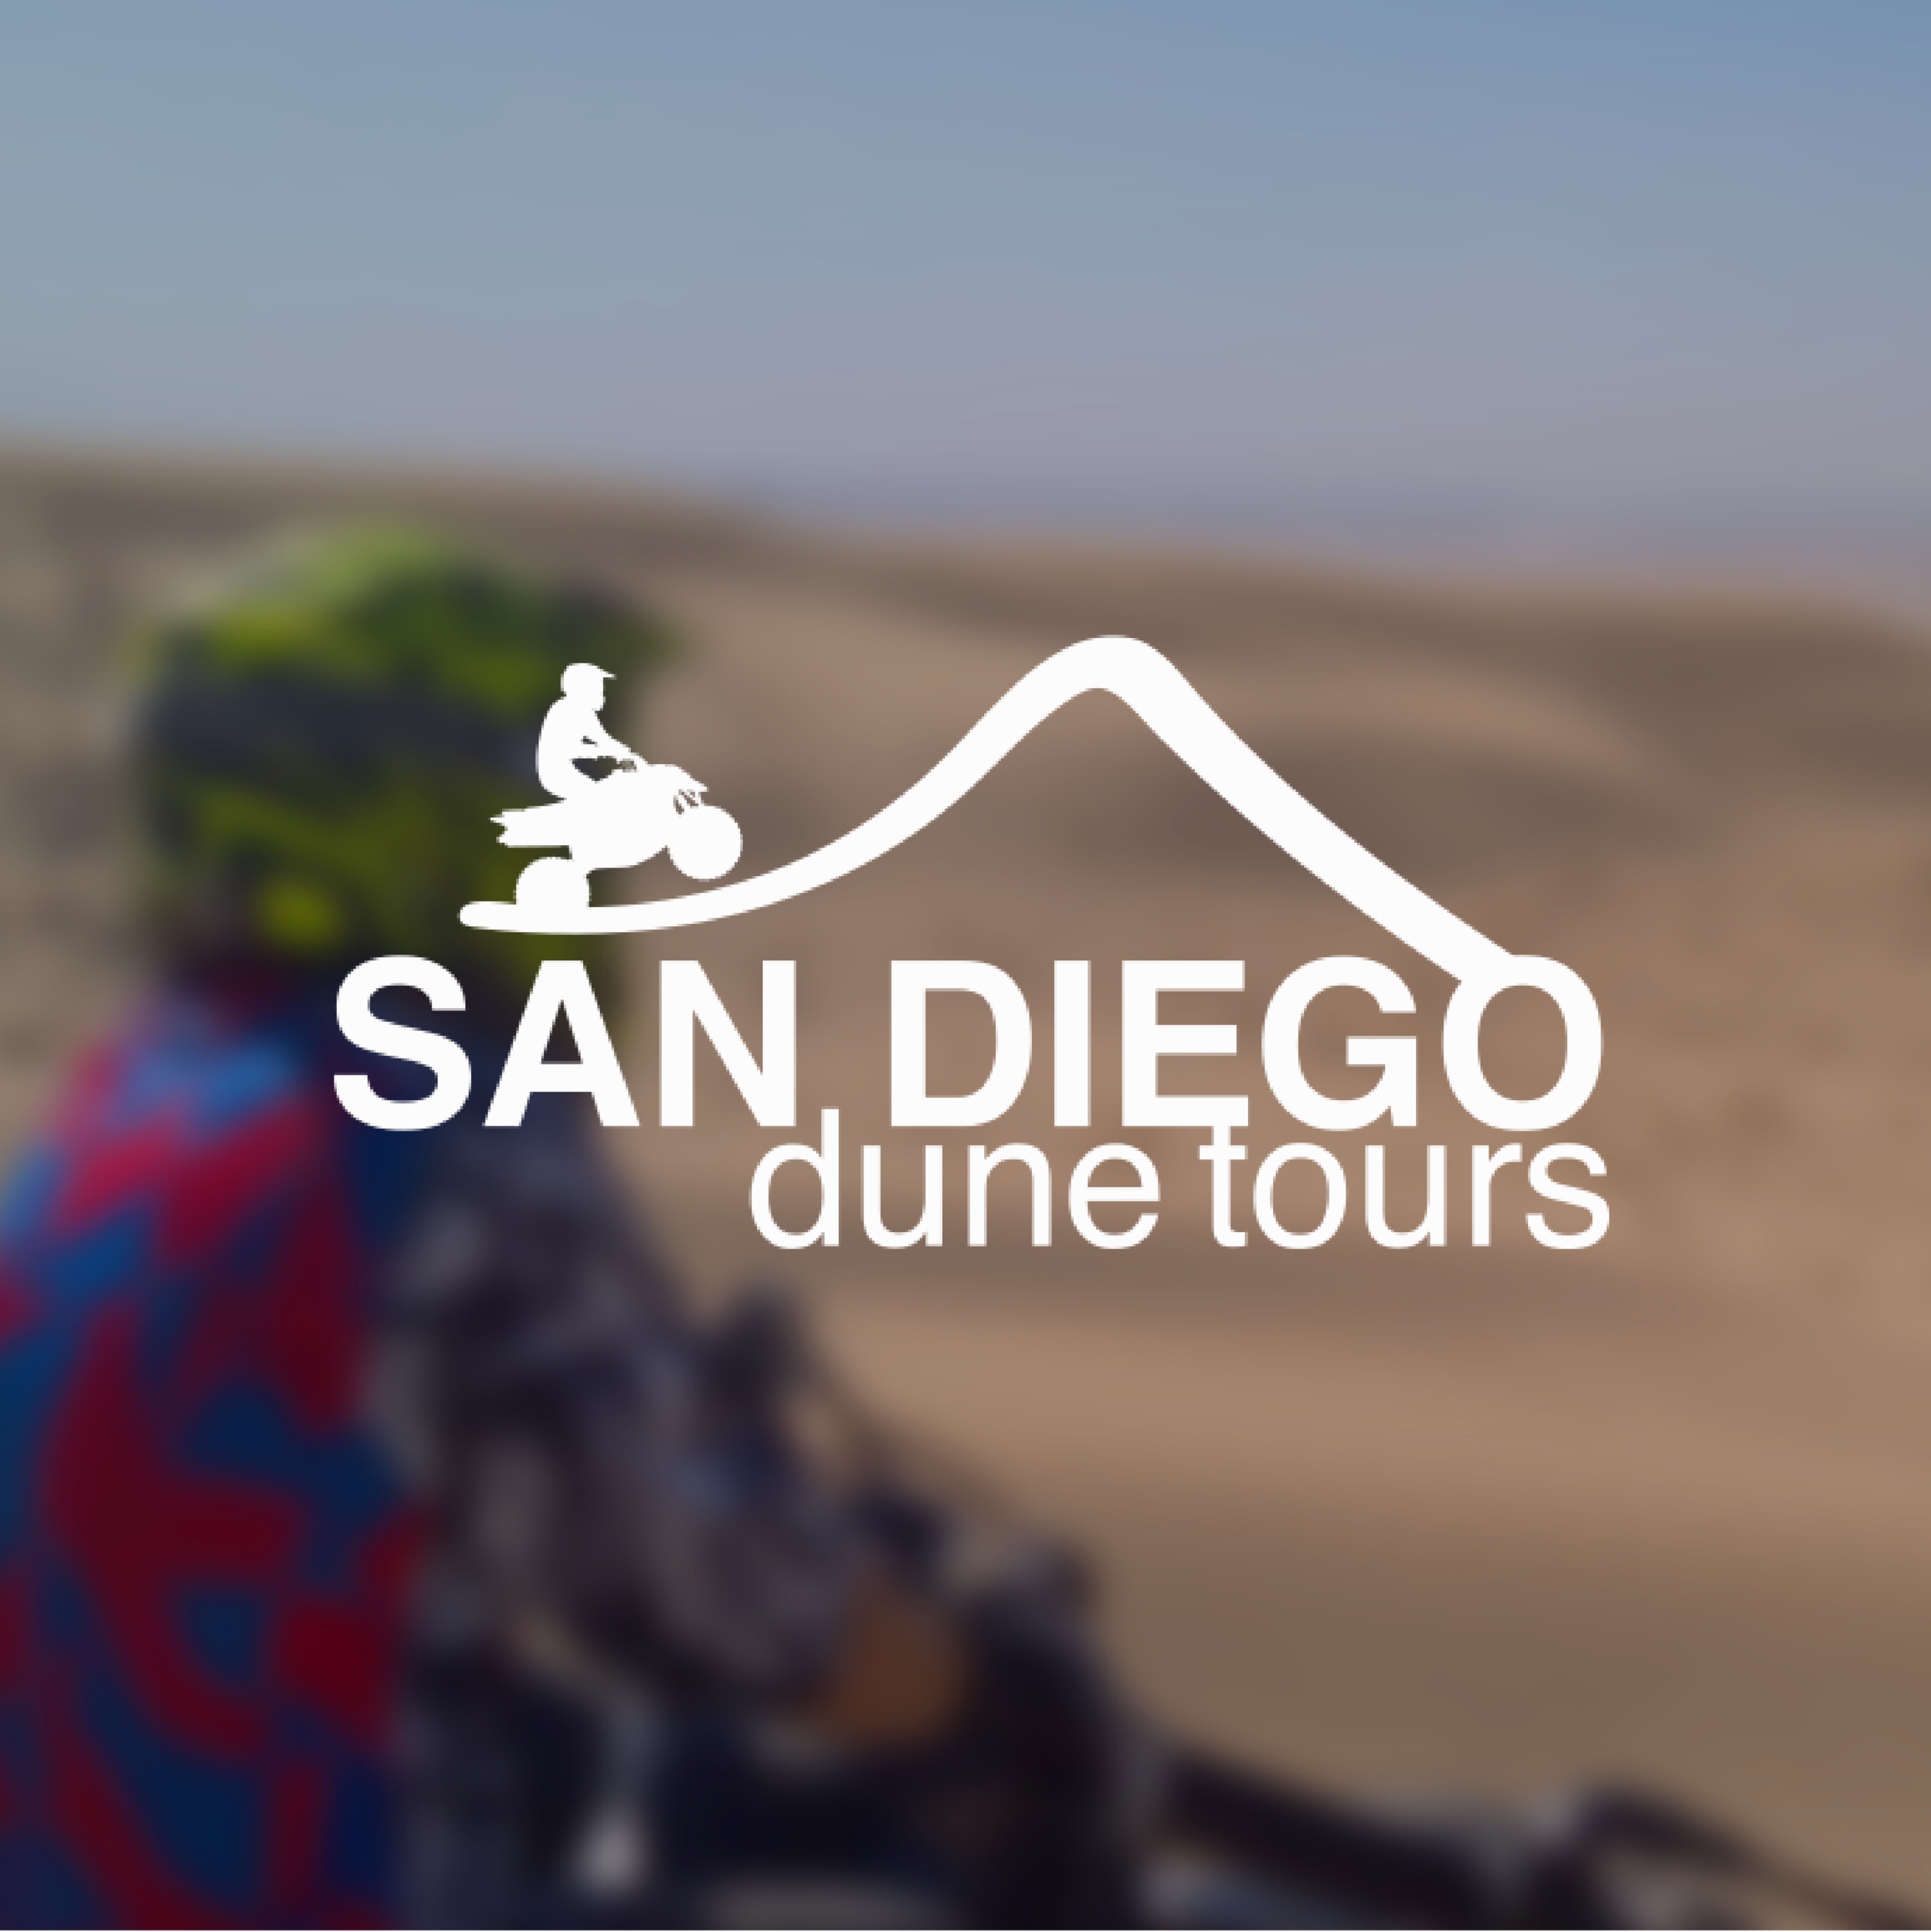 Tours and Museum Buttons_SD DUne Tours Button.png